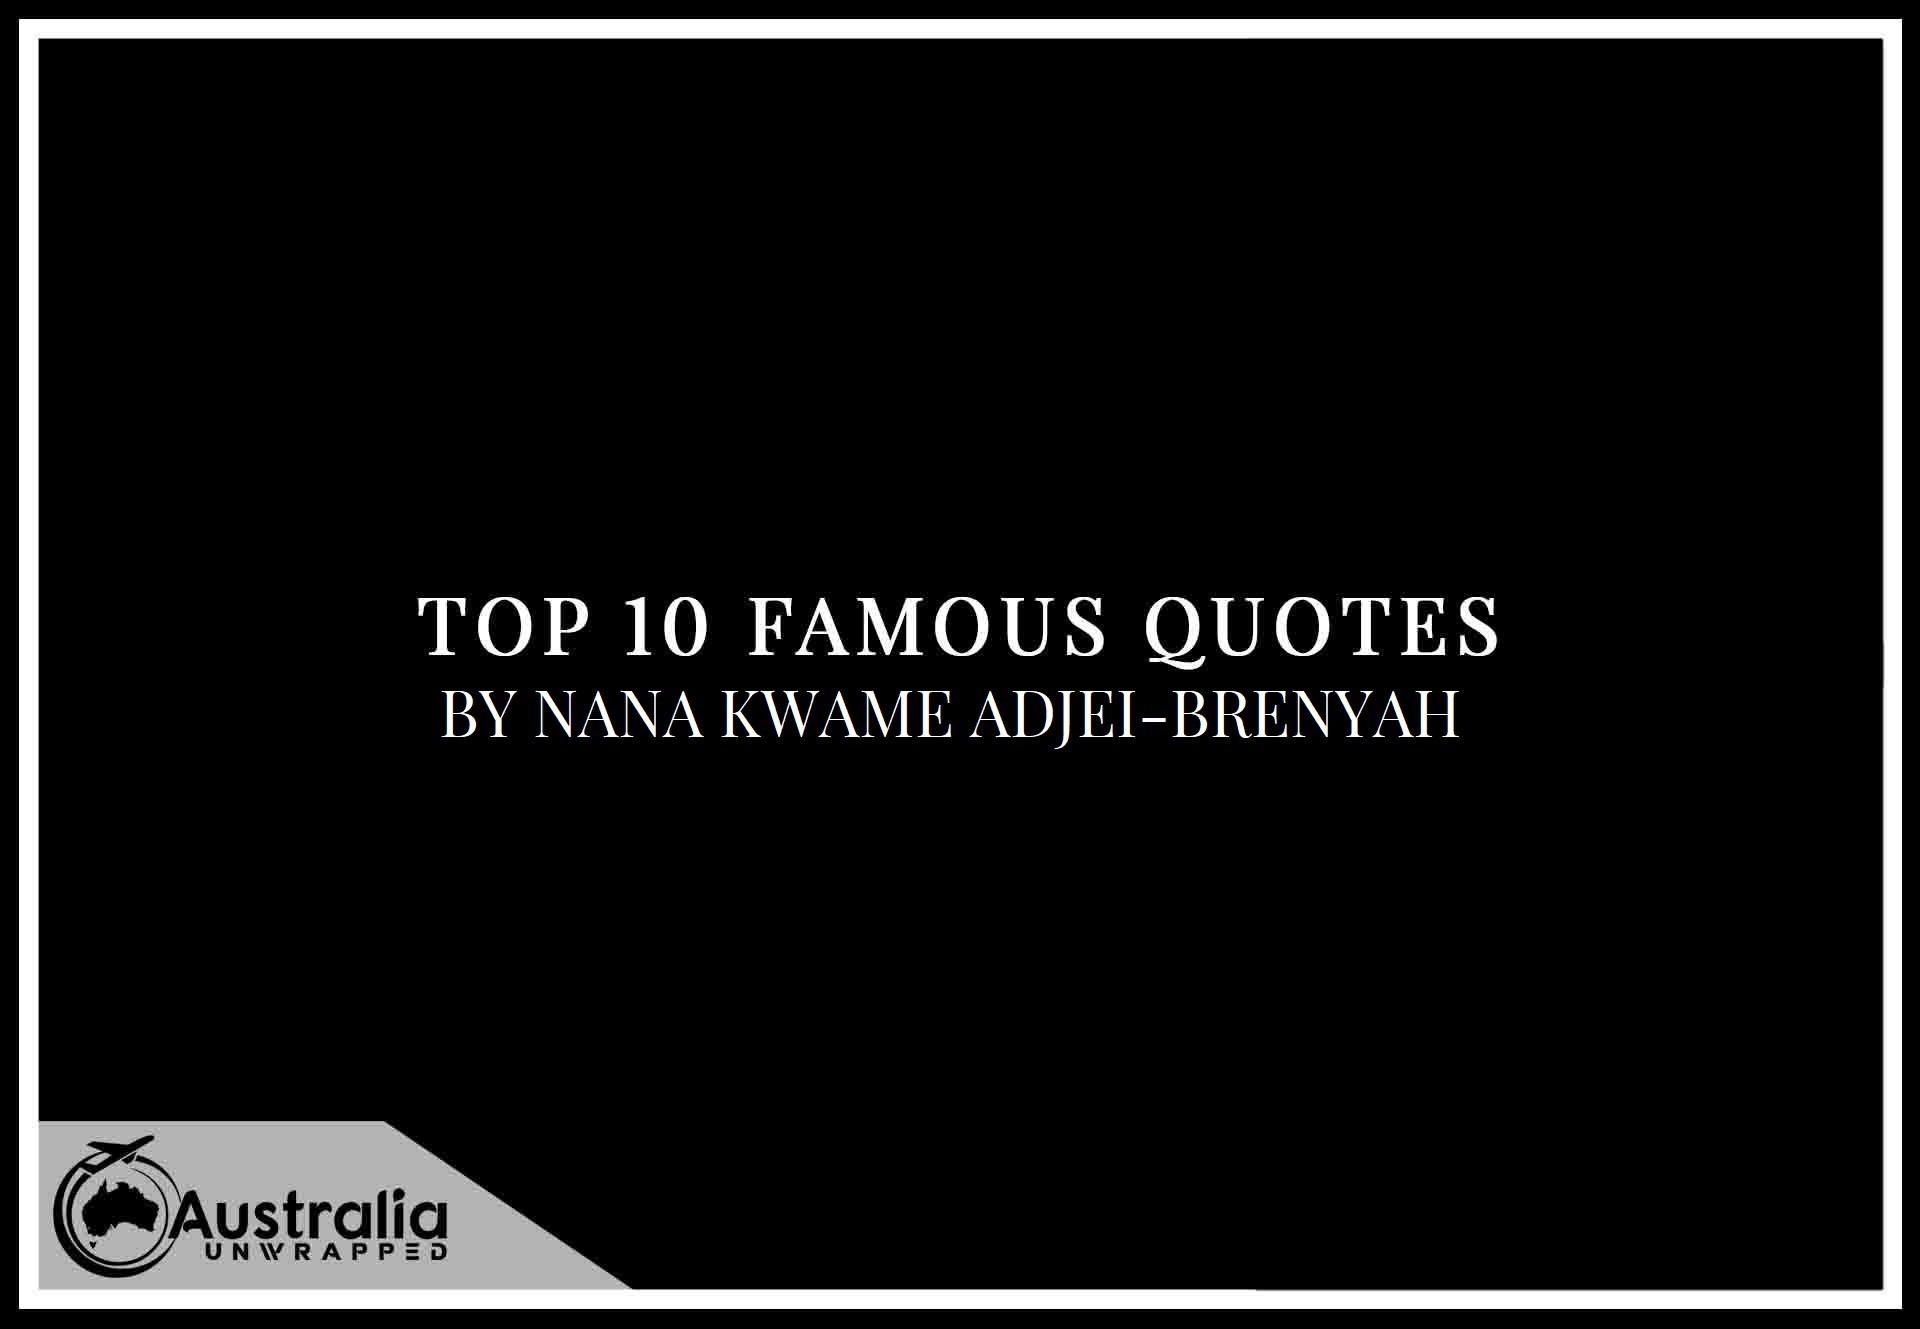 Top 10 Famous Quotes by Author Nana Kwame Adjei-Brenyah